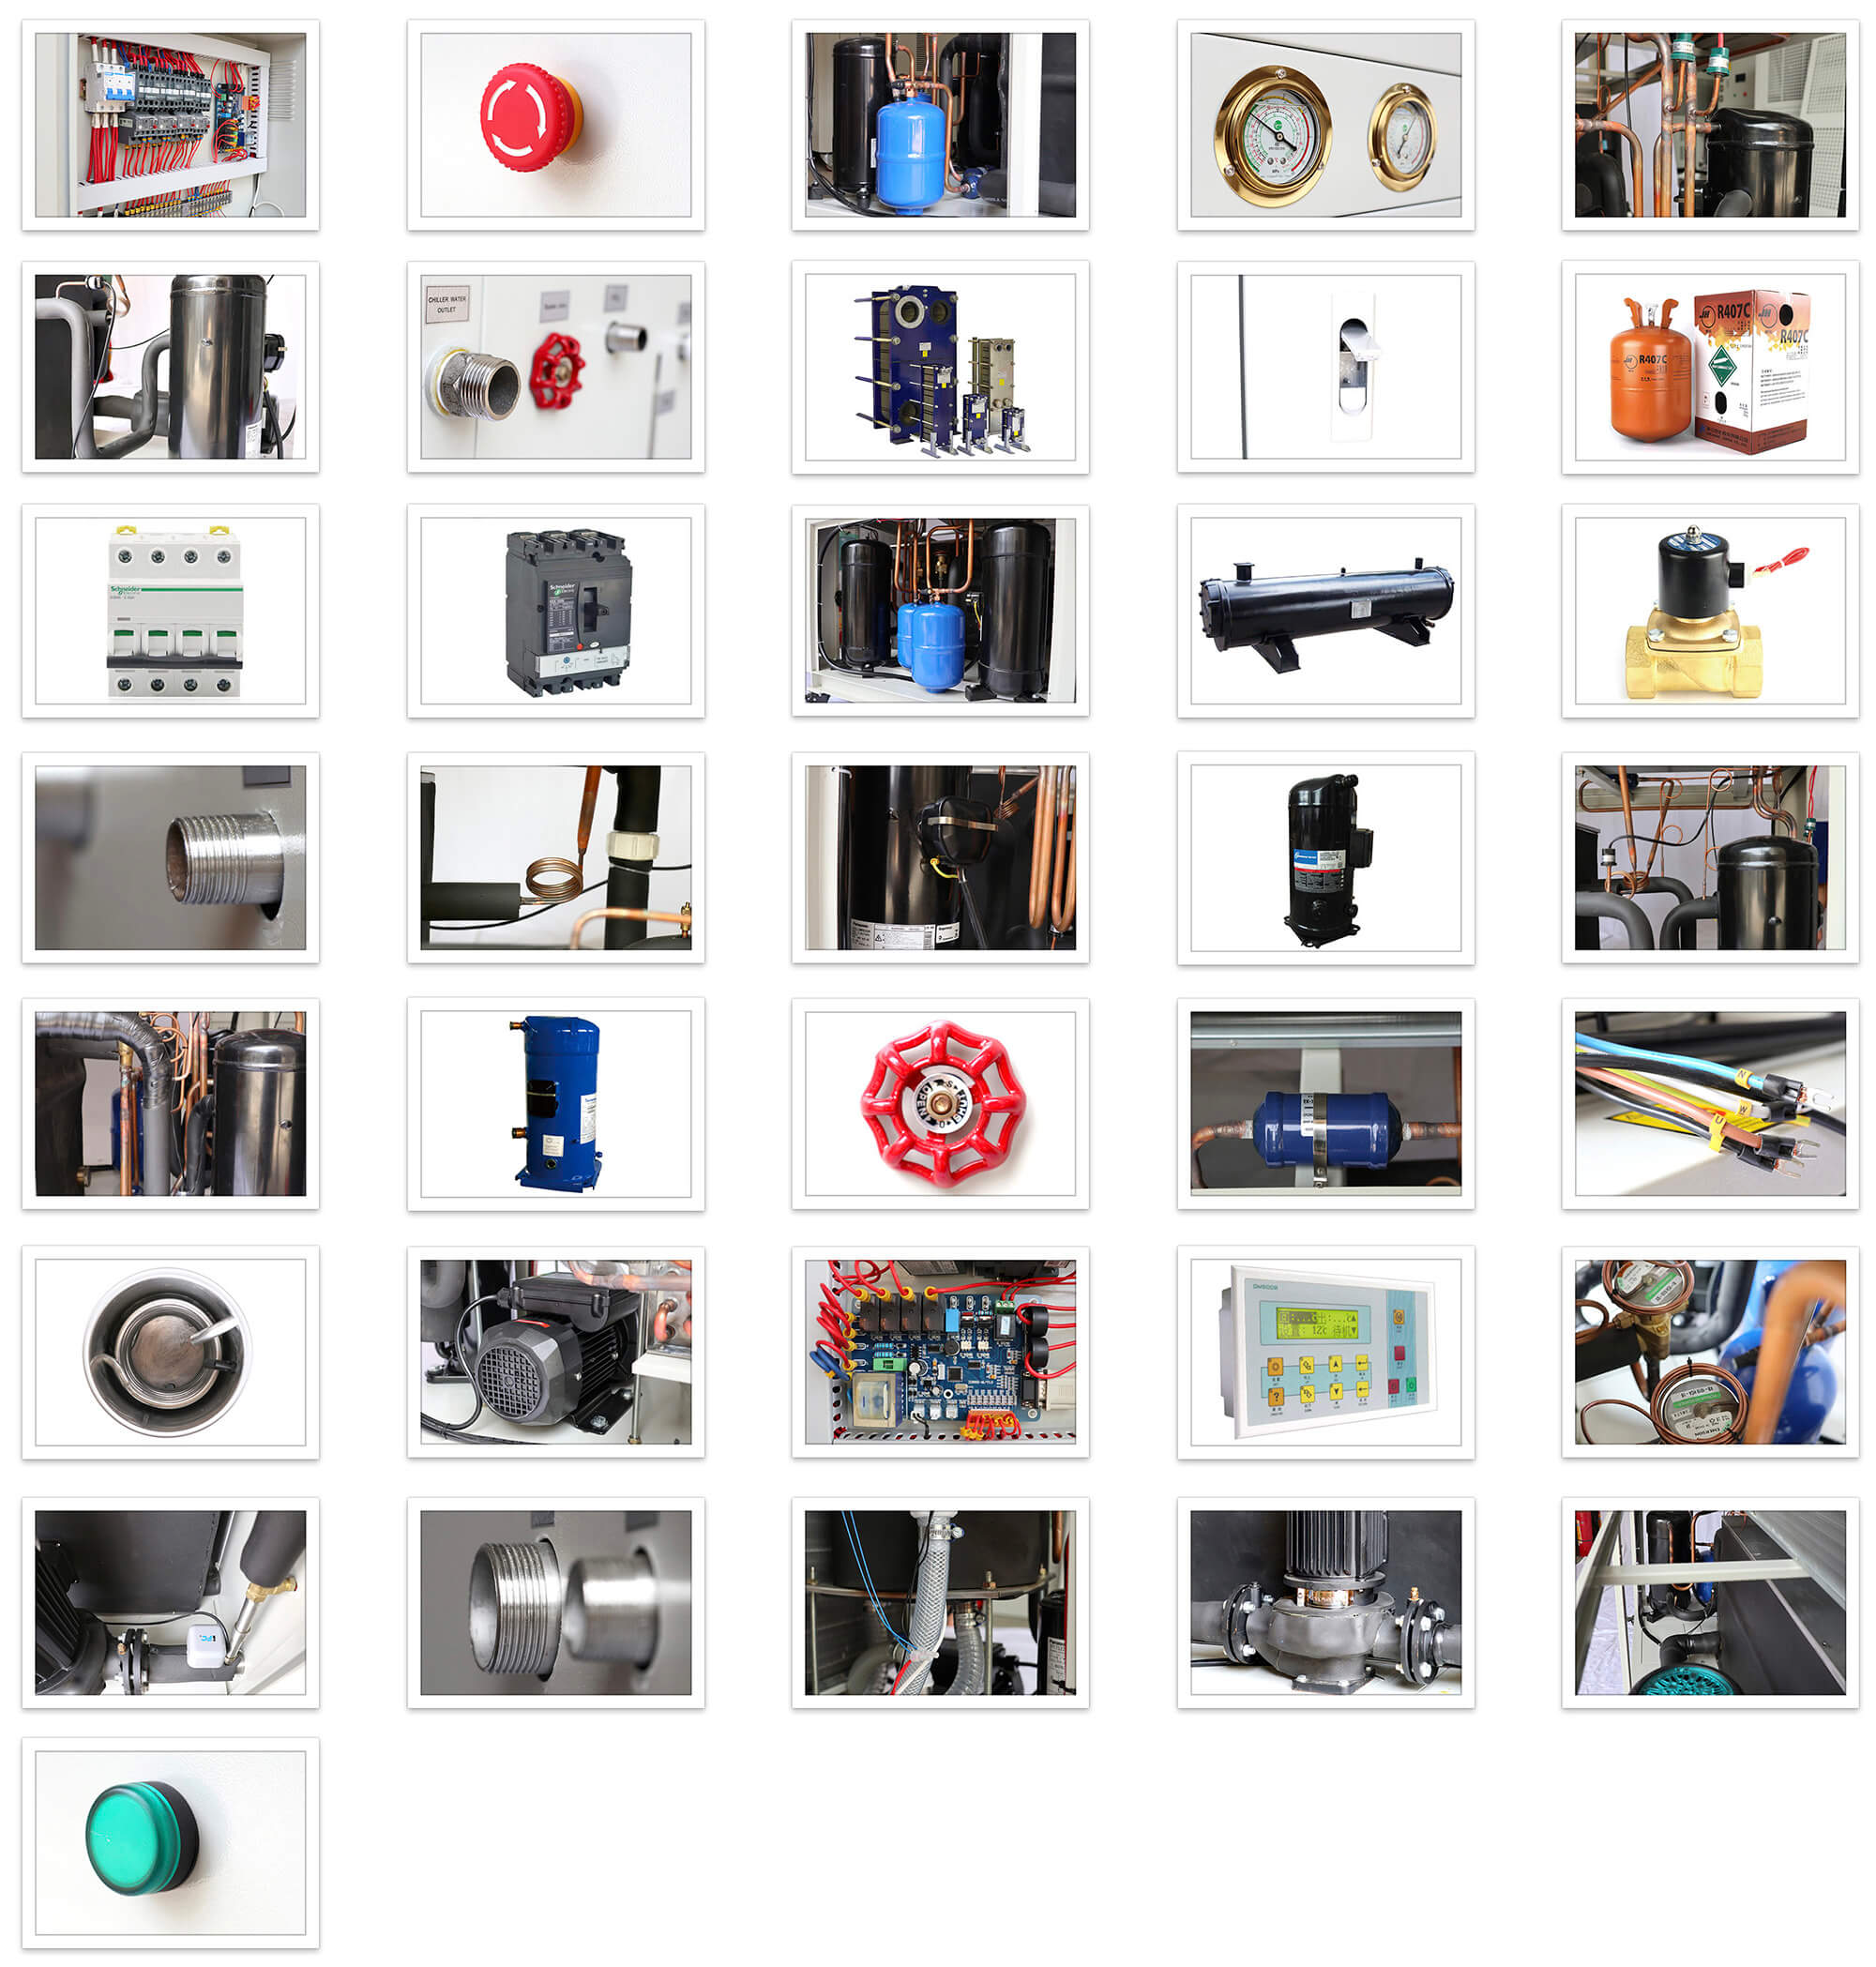 industrial water chiller main parts